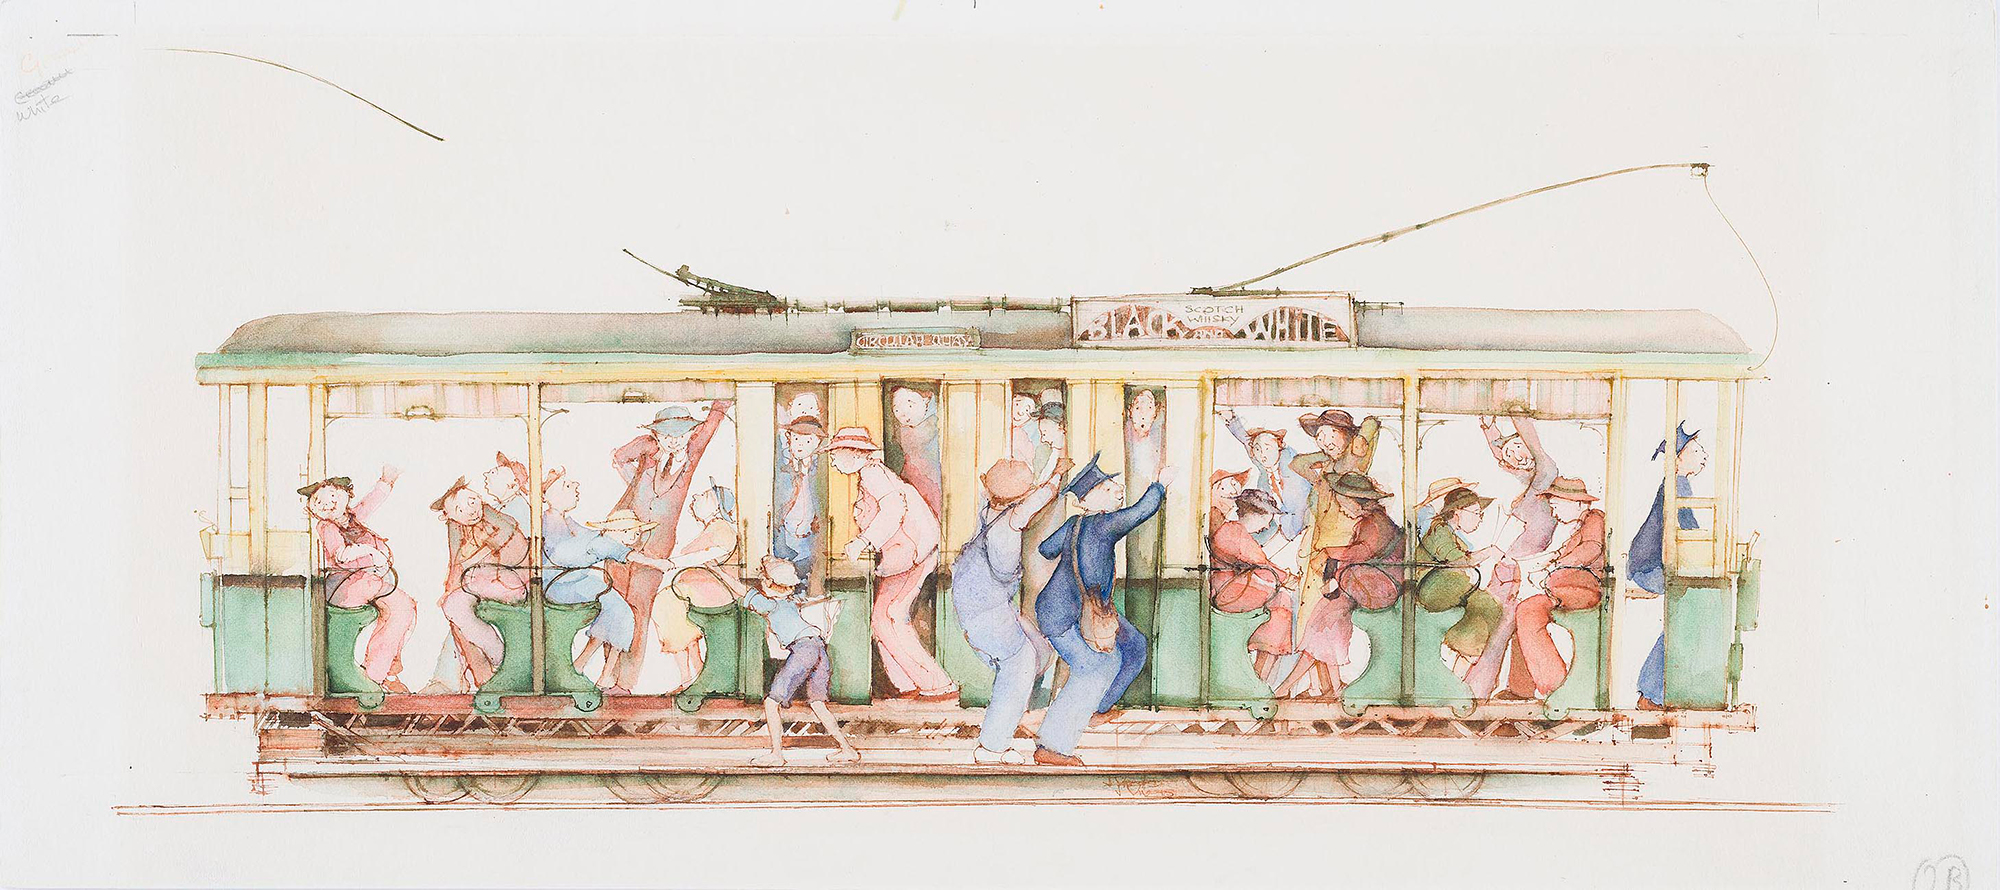 Drawing of an open tram filled with passengers.